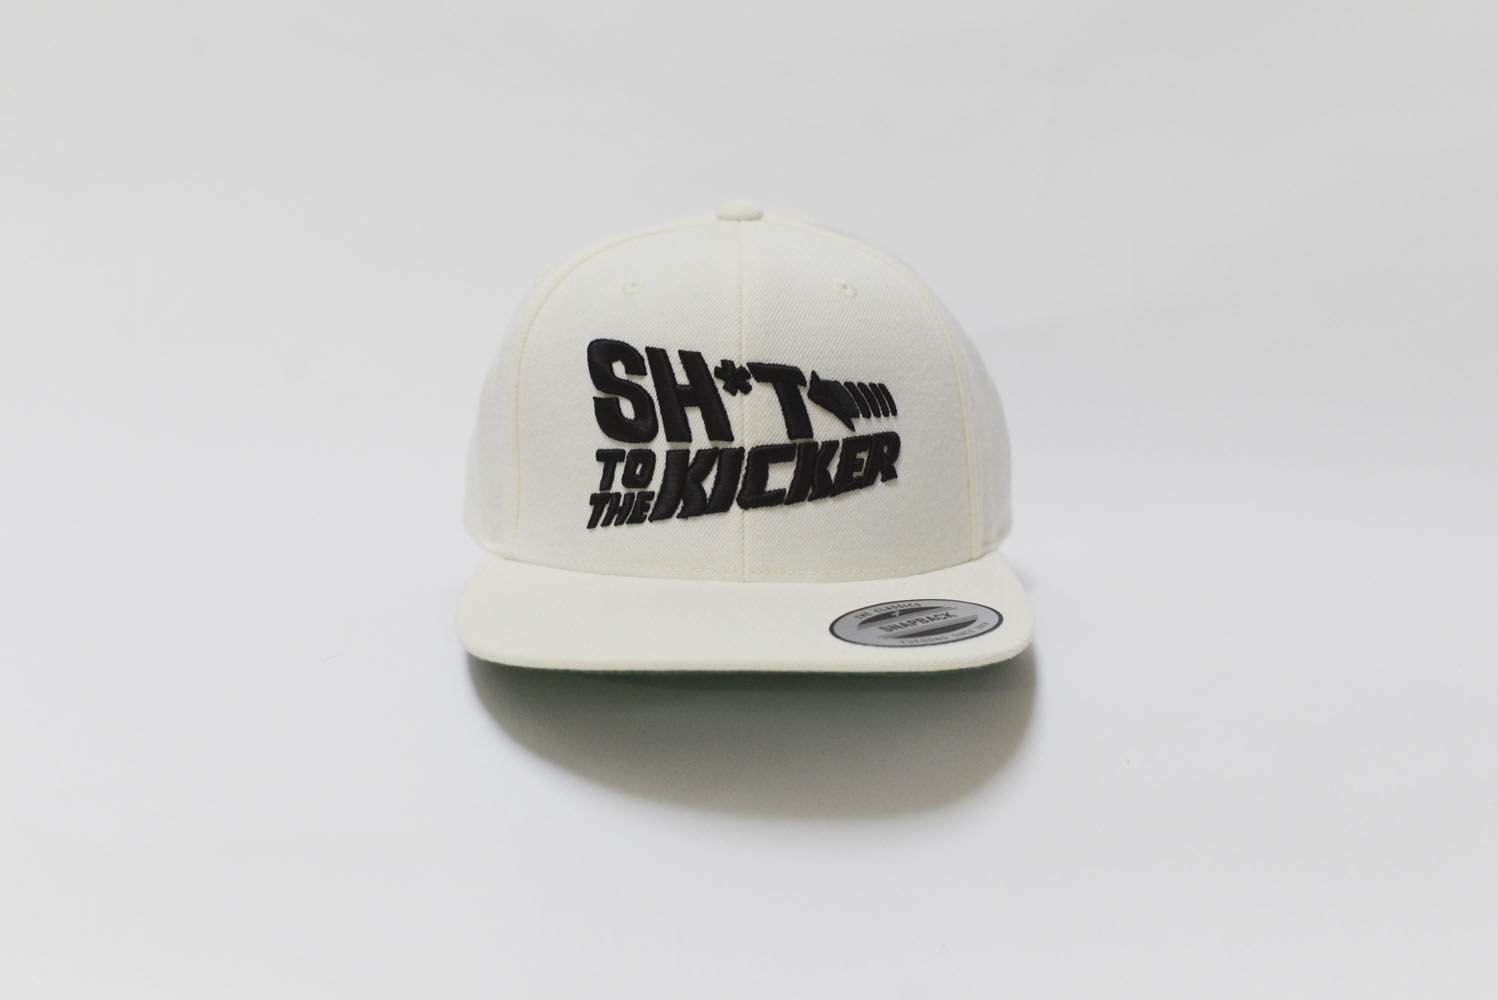 SH*T KICKER SH*T TO THE KICKER SNAP BACK WHITExBLACK